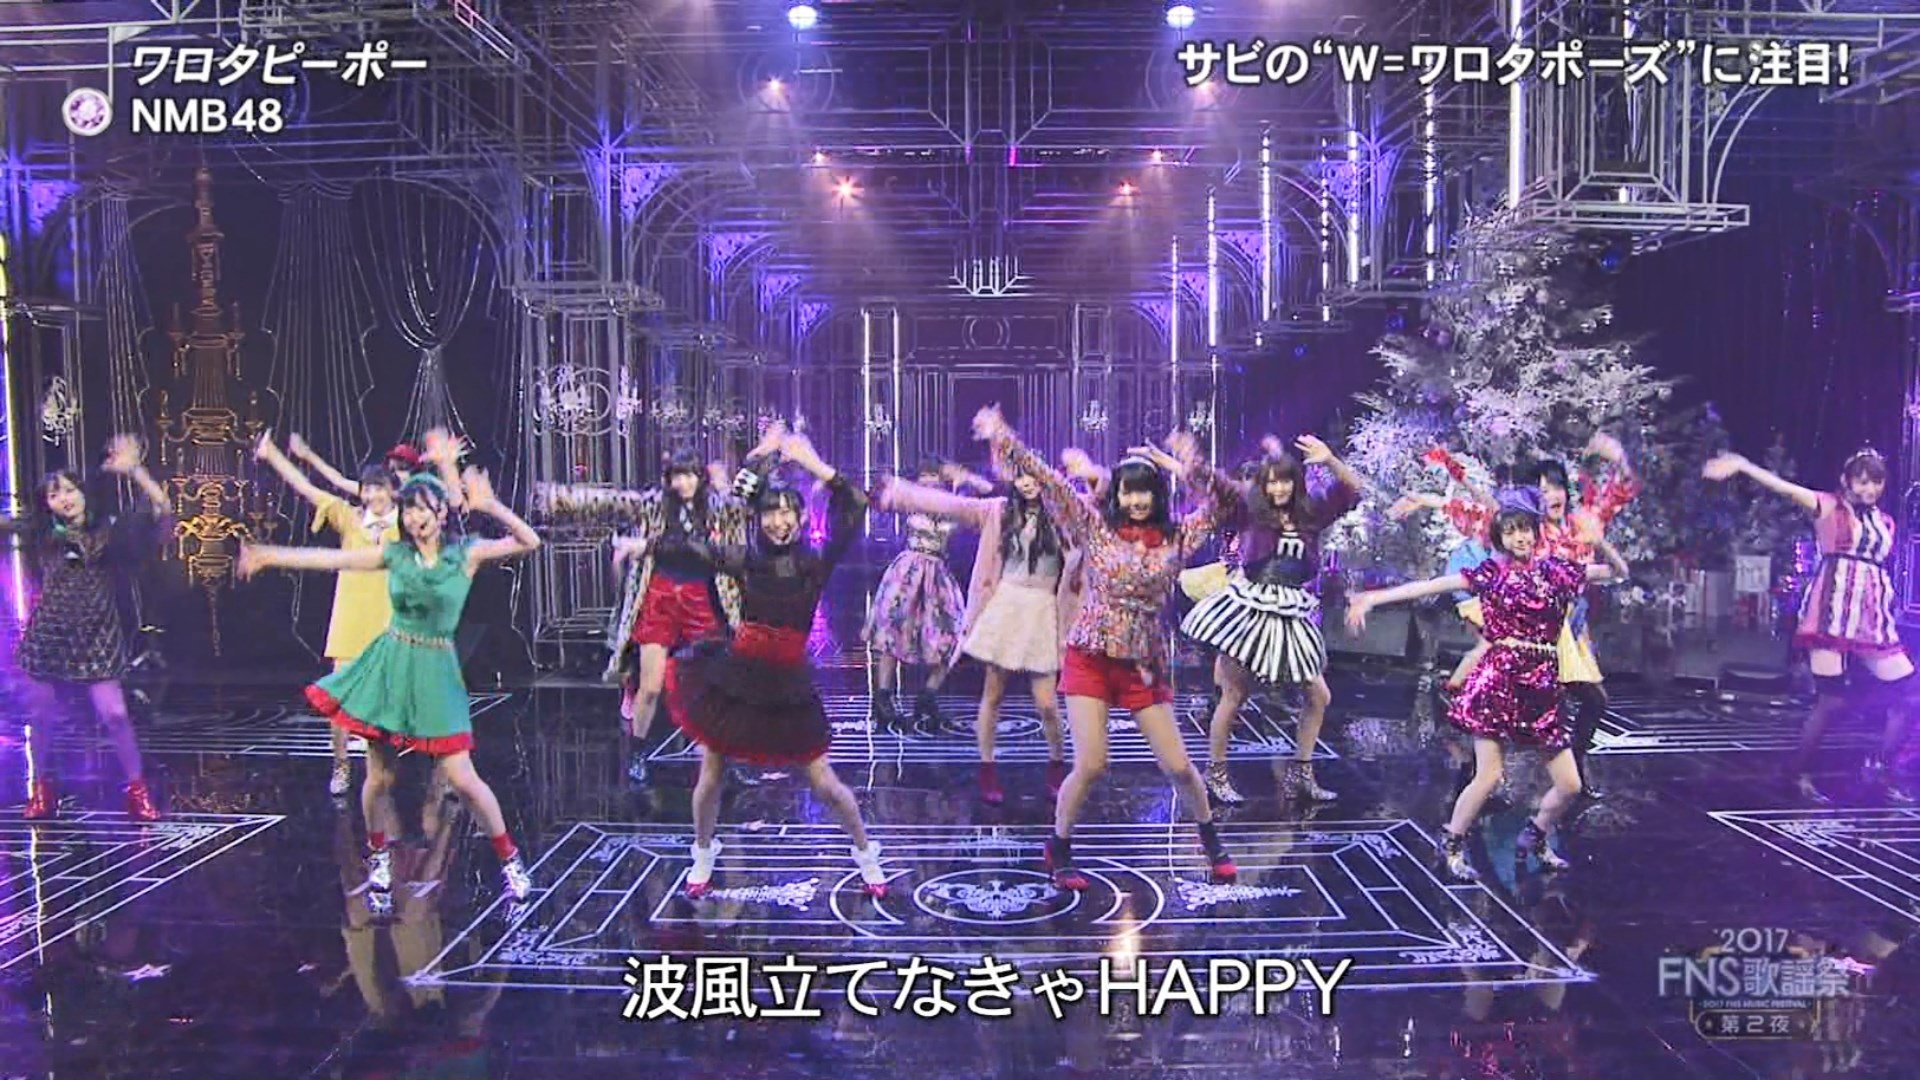 2017FNS歌謡祭第2夜・NMB48ワロタピーポーキャプ-051